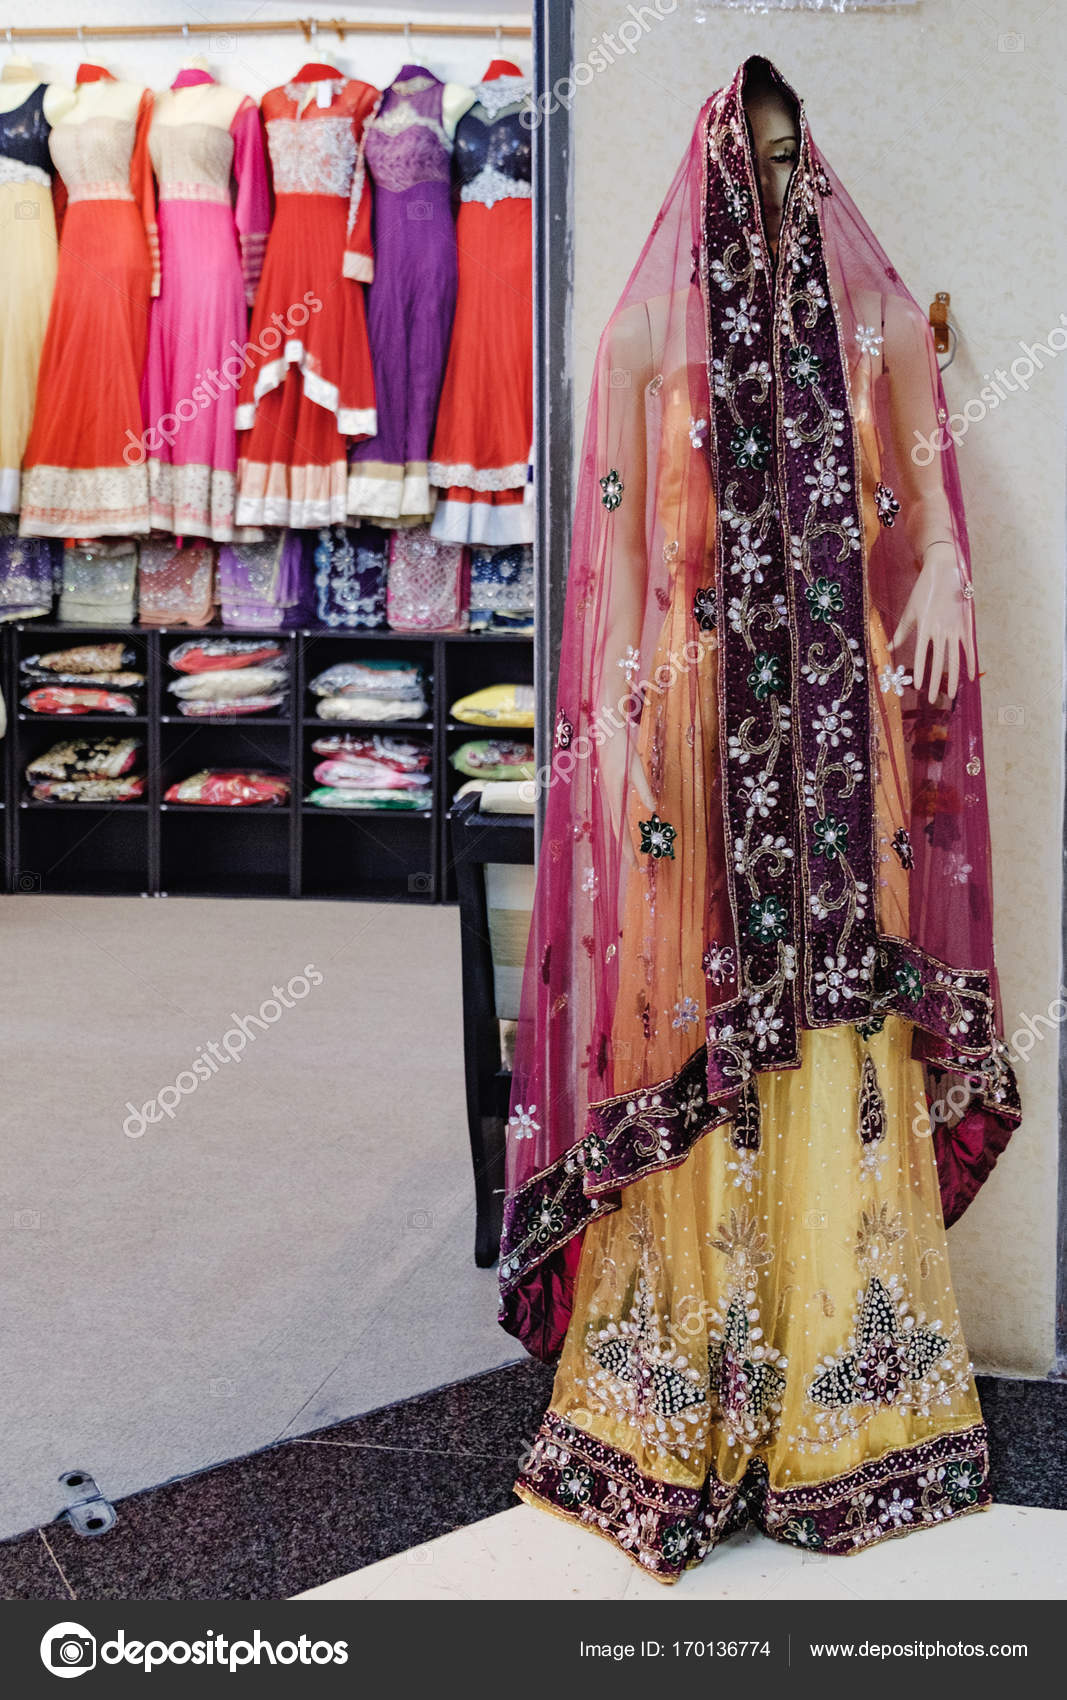 2c2cfda825ba Traditional Indian women s clothing for sale – Stock Editorial Photo ...